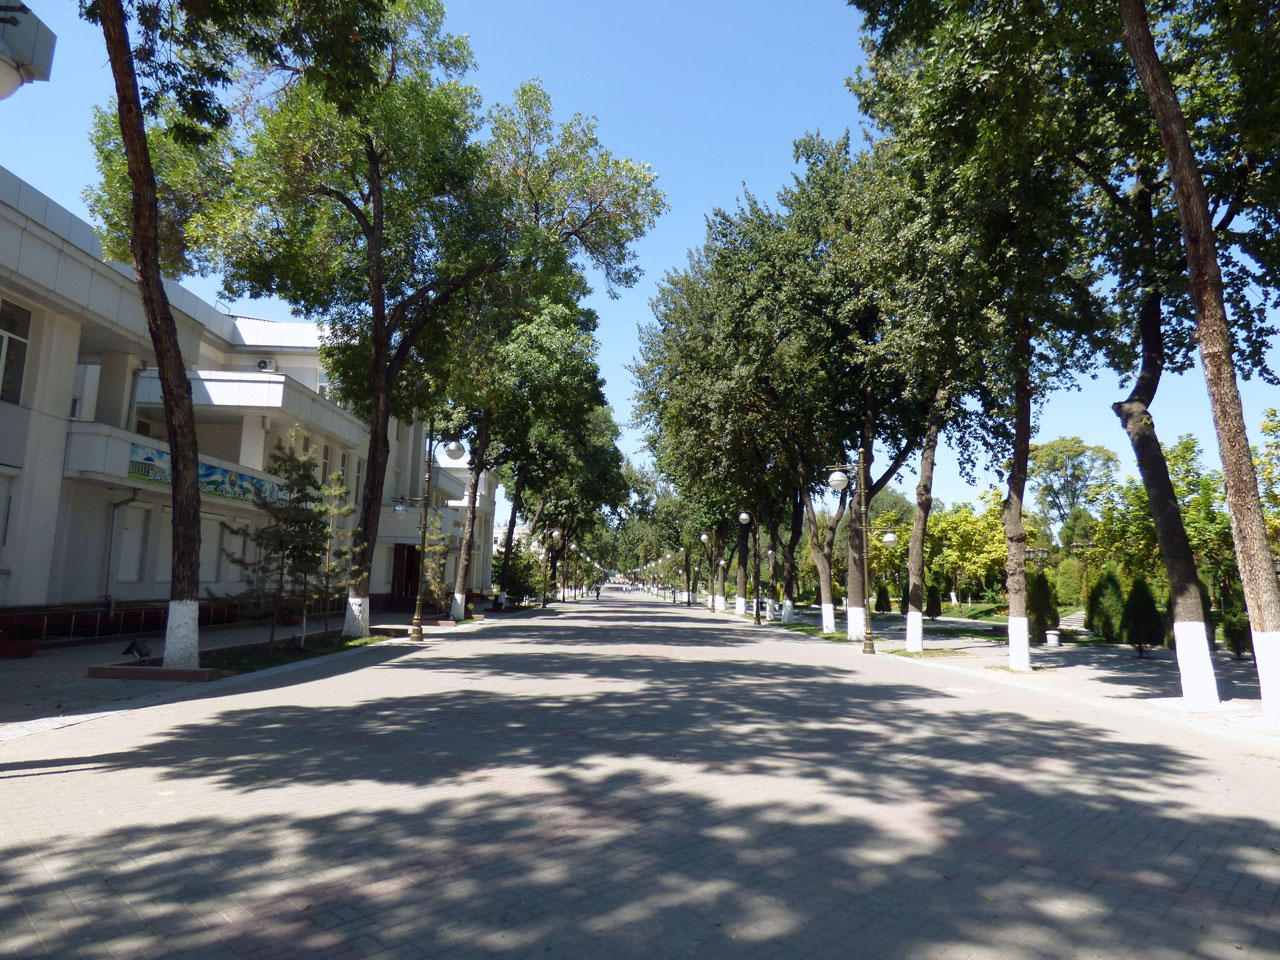 A virtually deserted park in central Tashkent